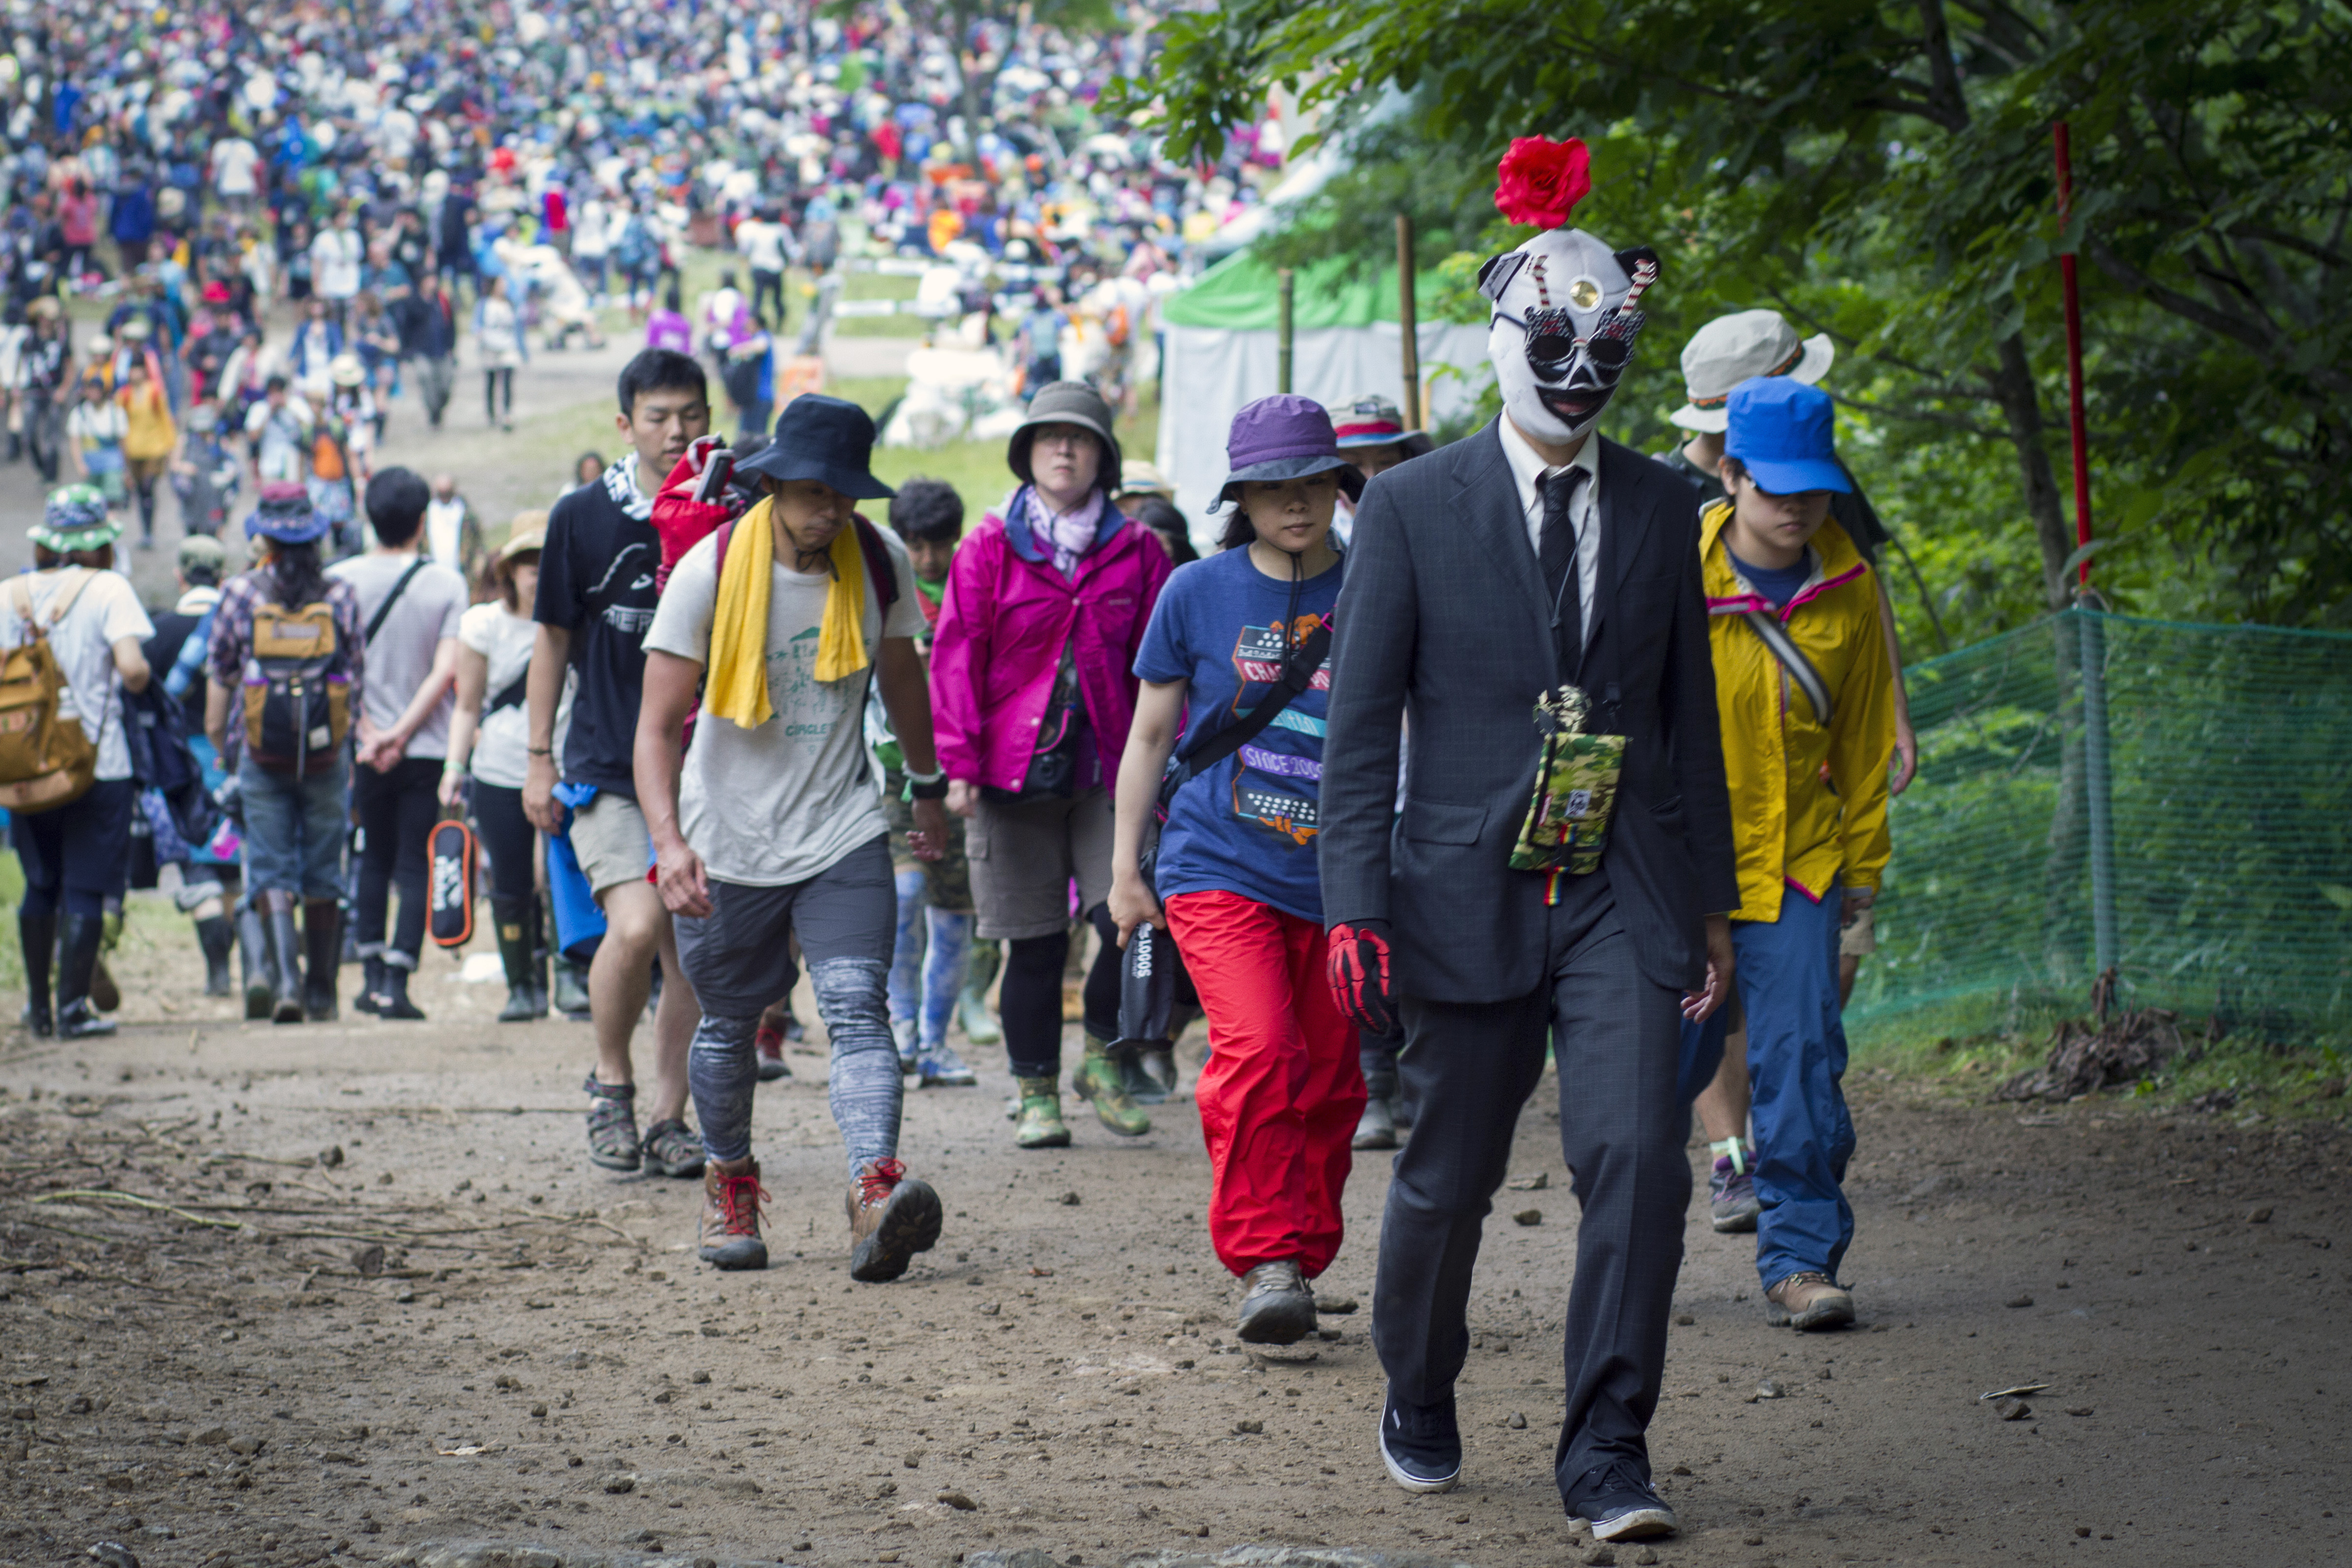 The long march: Music fans at Fuji Rock Festival commute between stages at the event. | JAMES HADFIELD